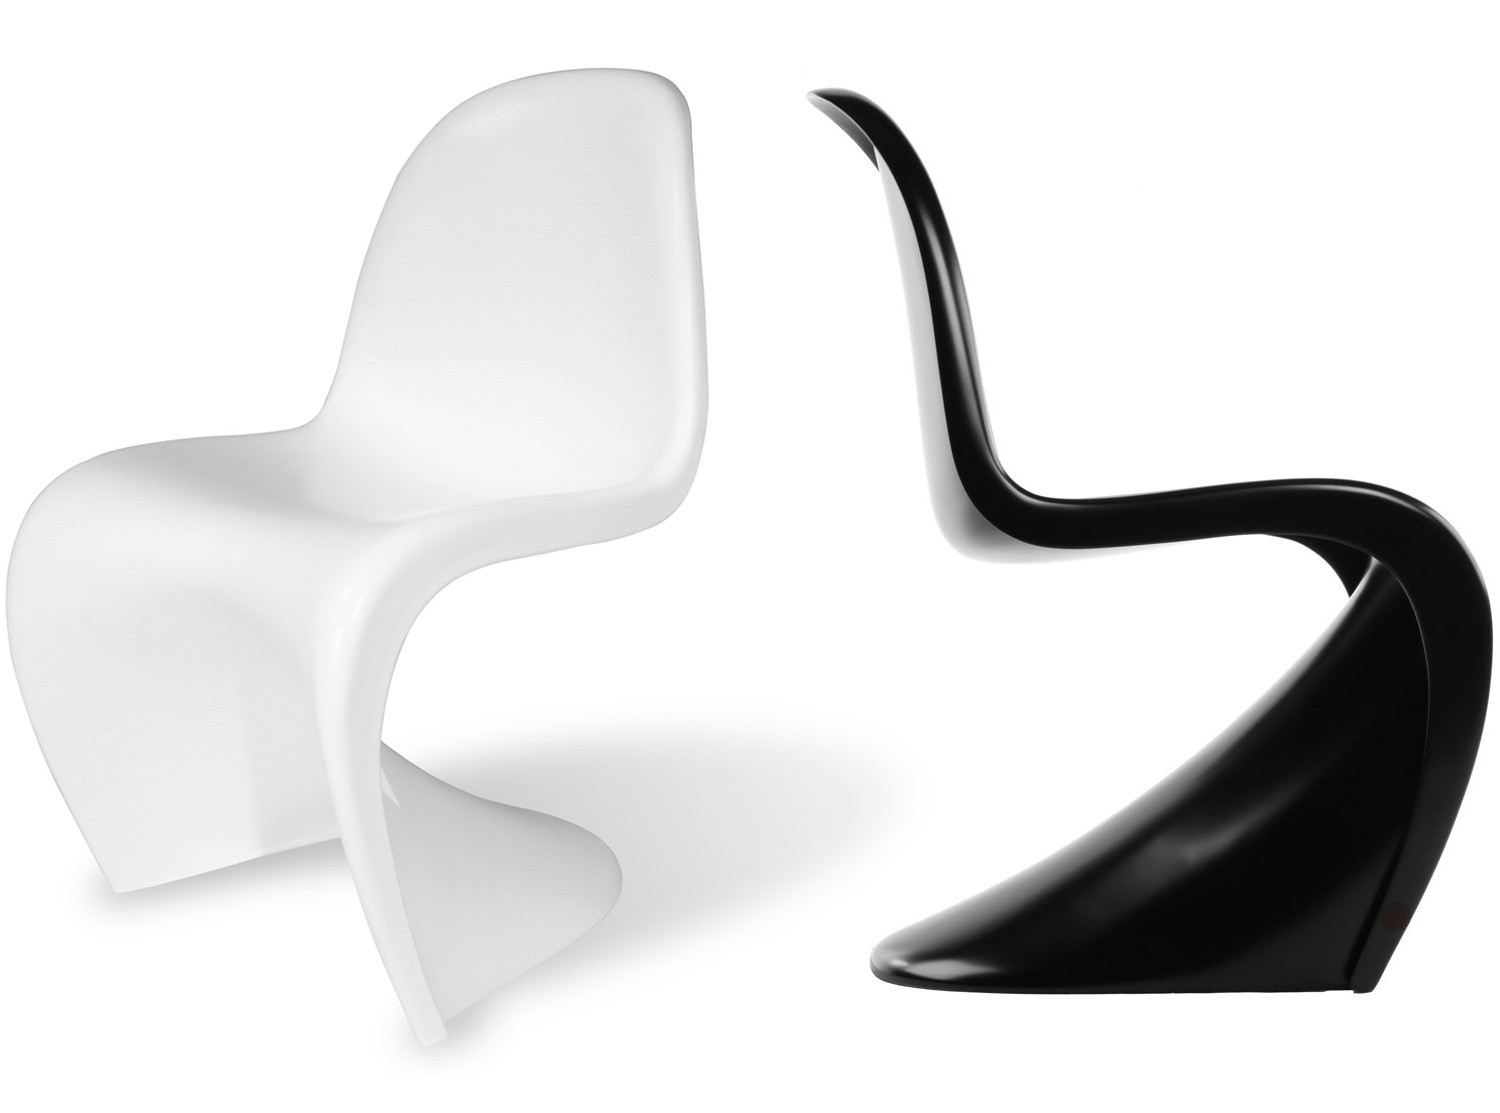 panton s chair fiberglass platinum replica. Black Bedroom Furniture Sets. Home Design Ideas